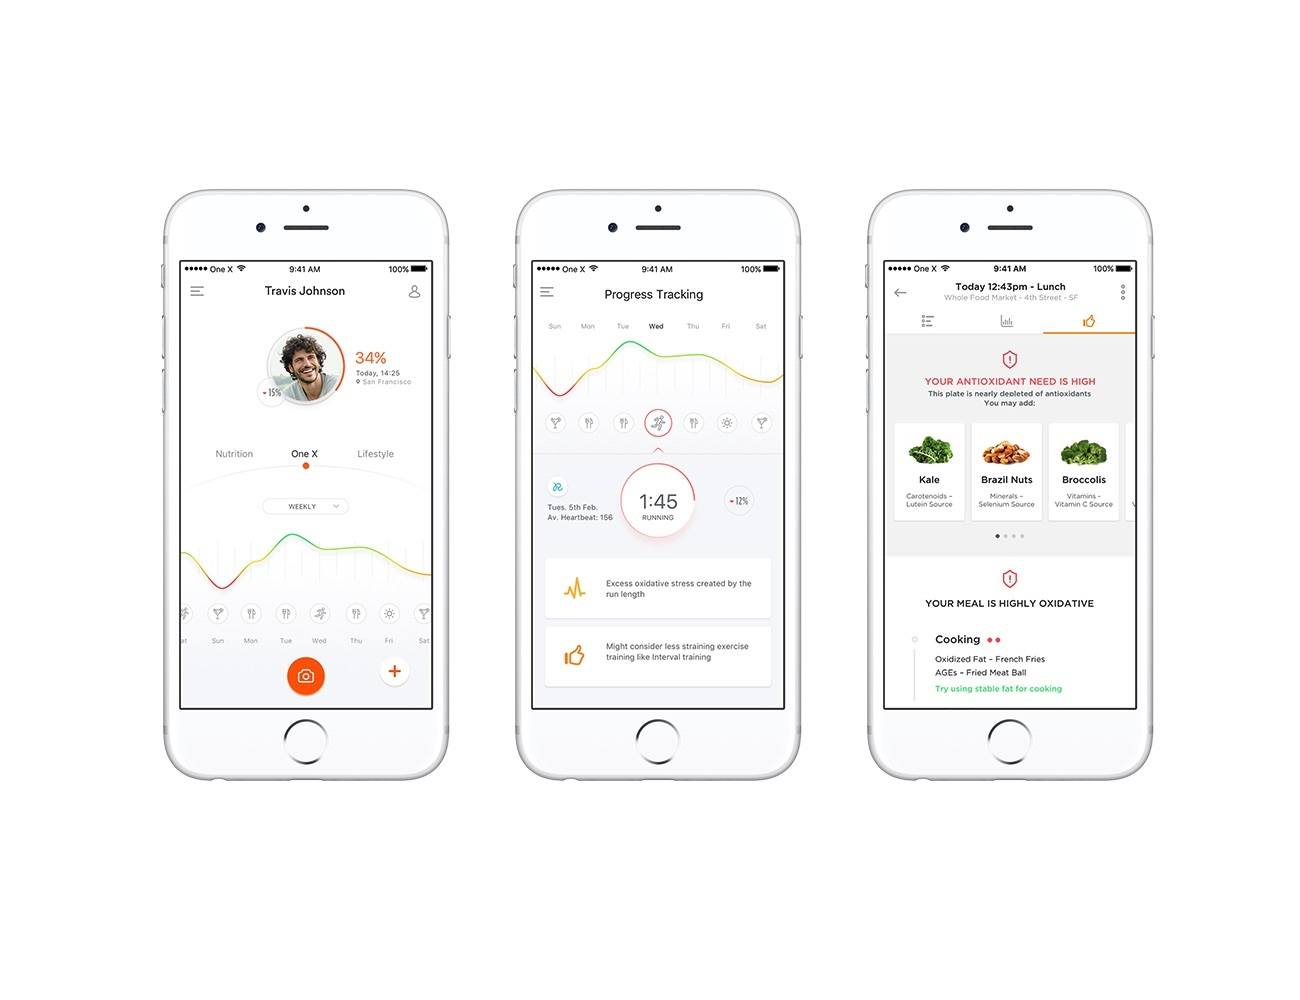 One X – Track your Health in the palm of your hand